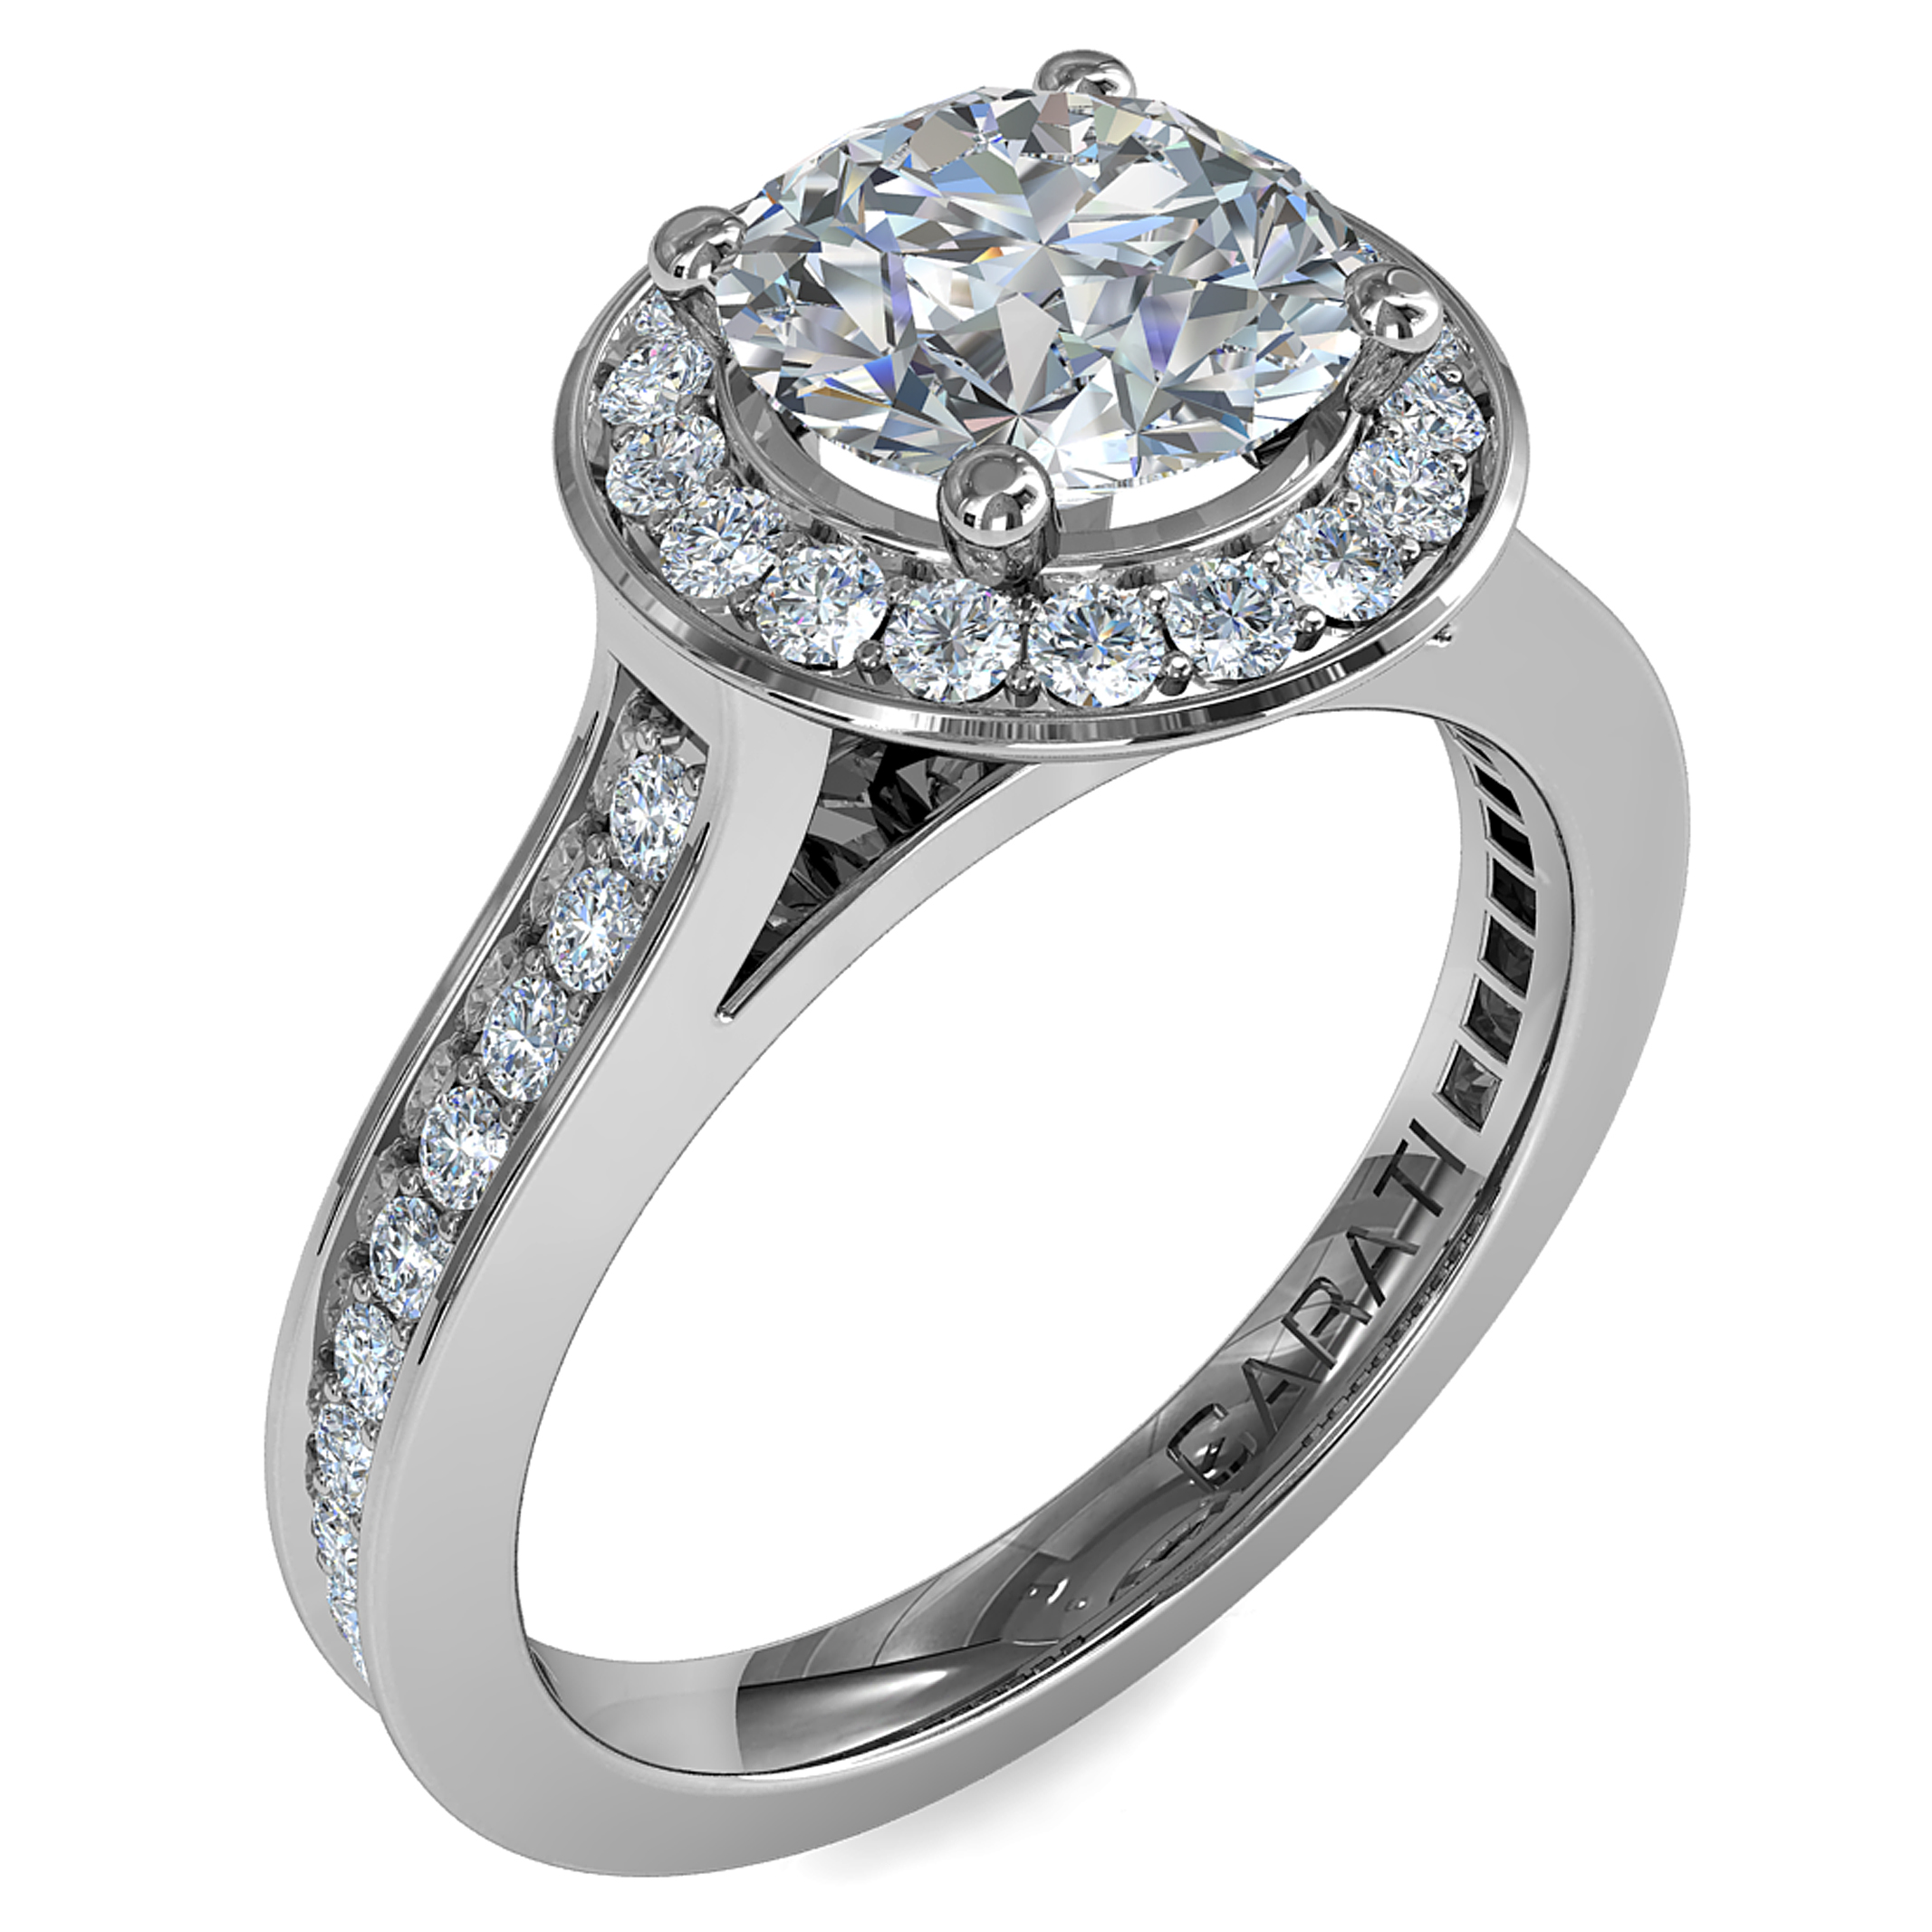 Round Brilliant Cut Halo Diamond Engagement Ring, 4 Claws Set in a Bead Set Halo on a Bead Set Band with Classic Support Bar Undersetting.